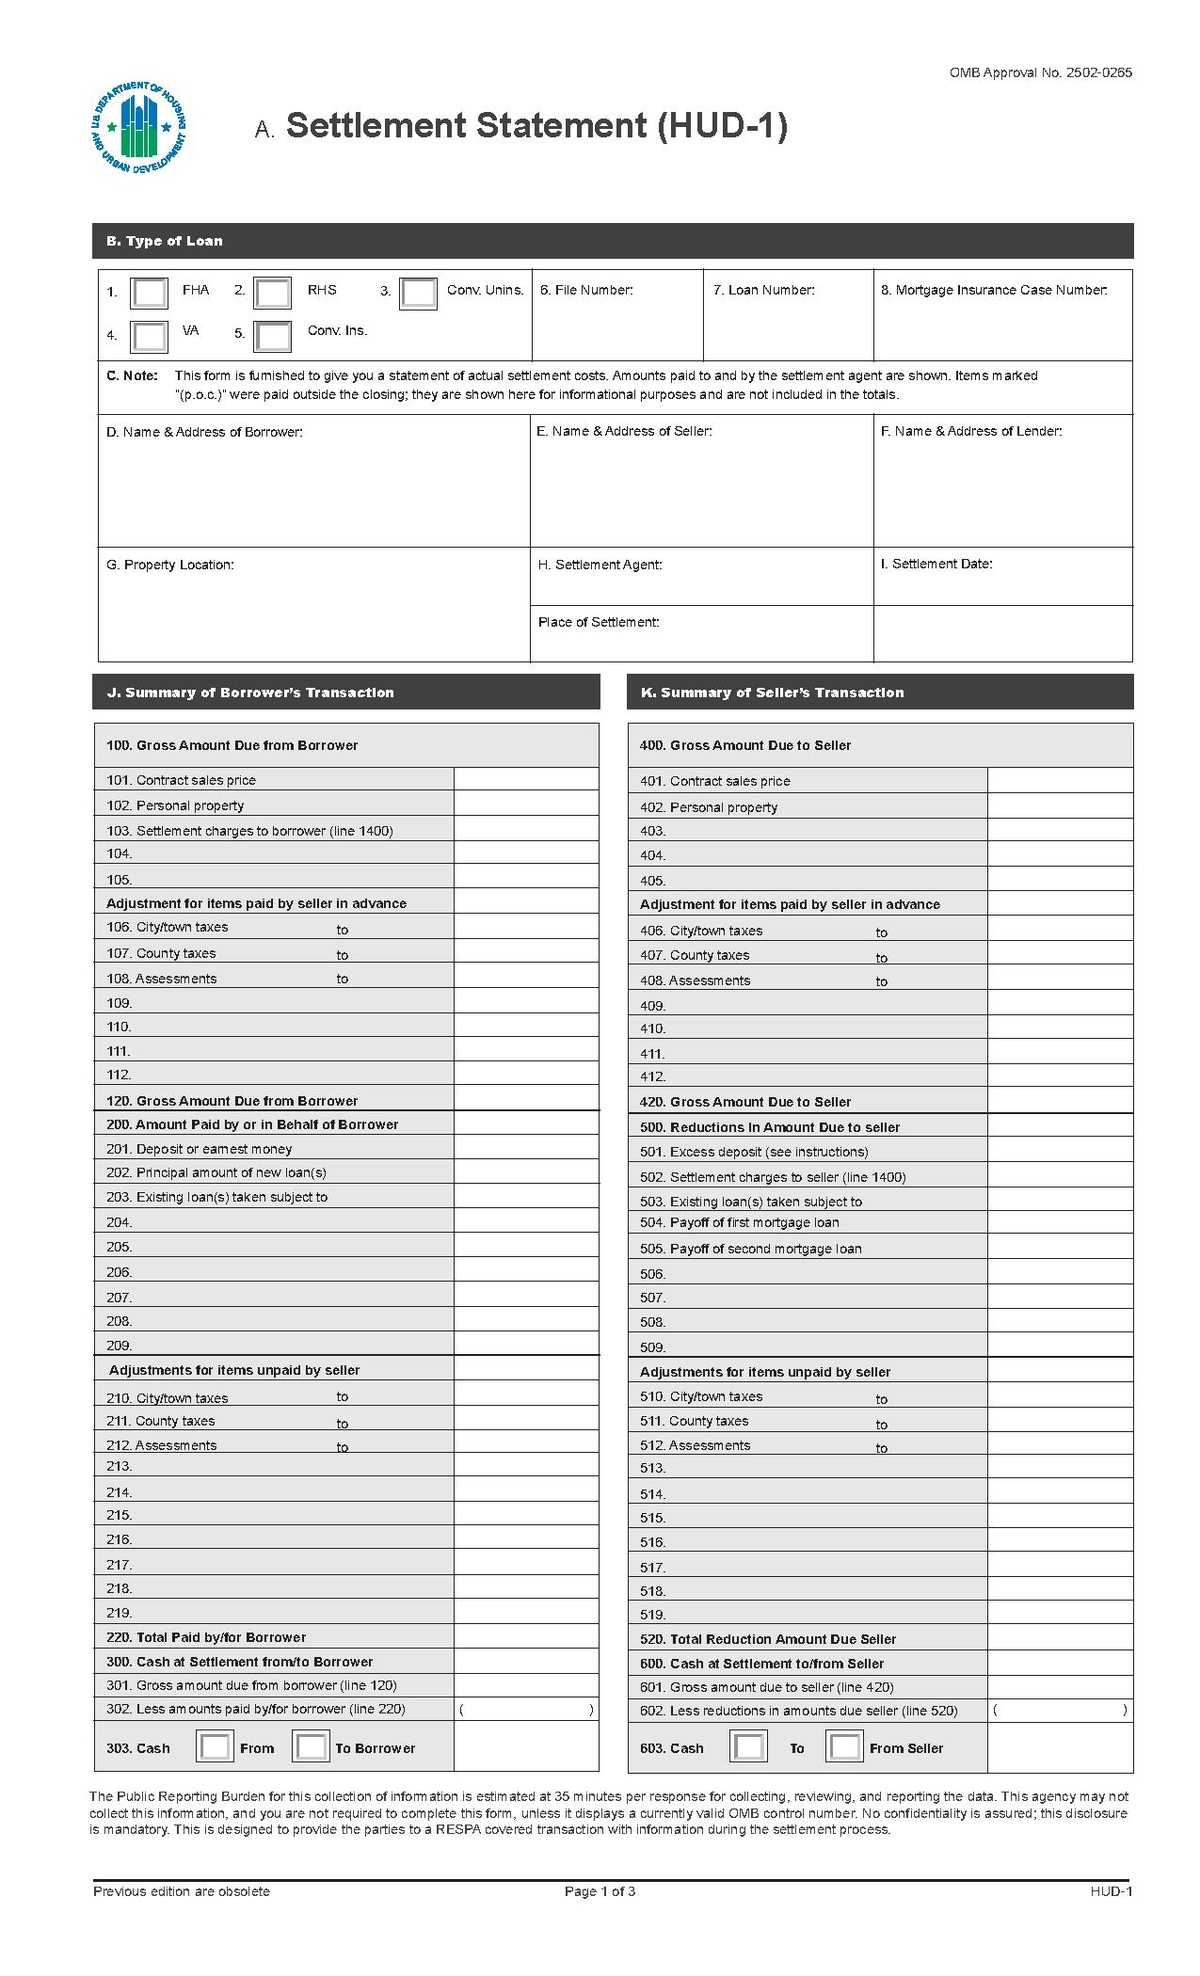 How To Fill Out A Preliminary Hud 1 Form